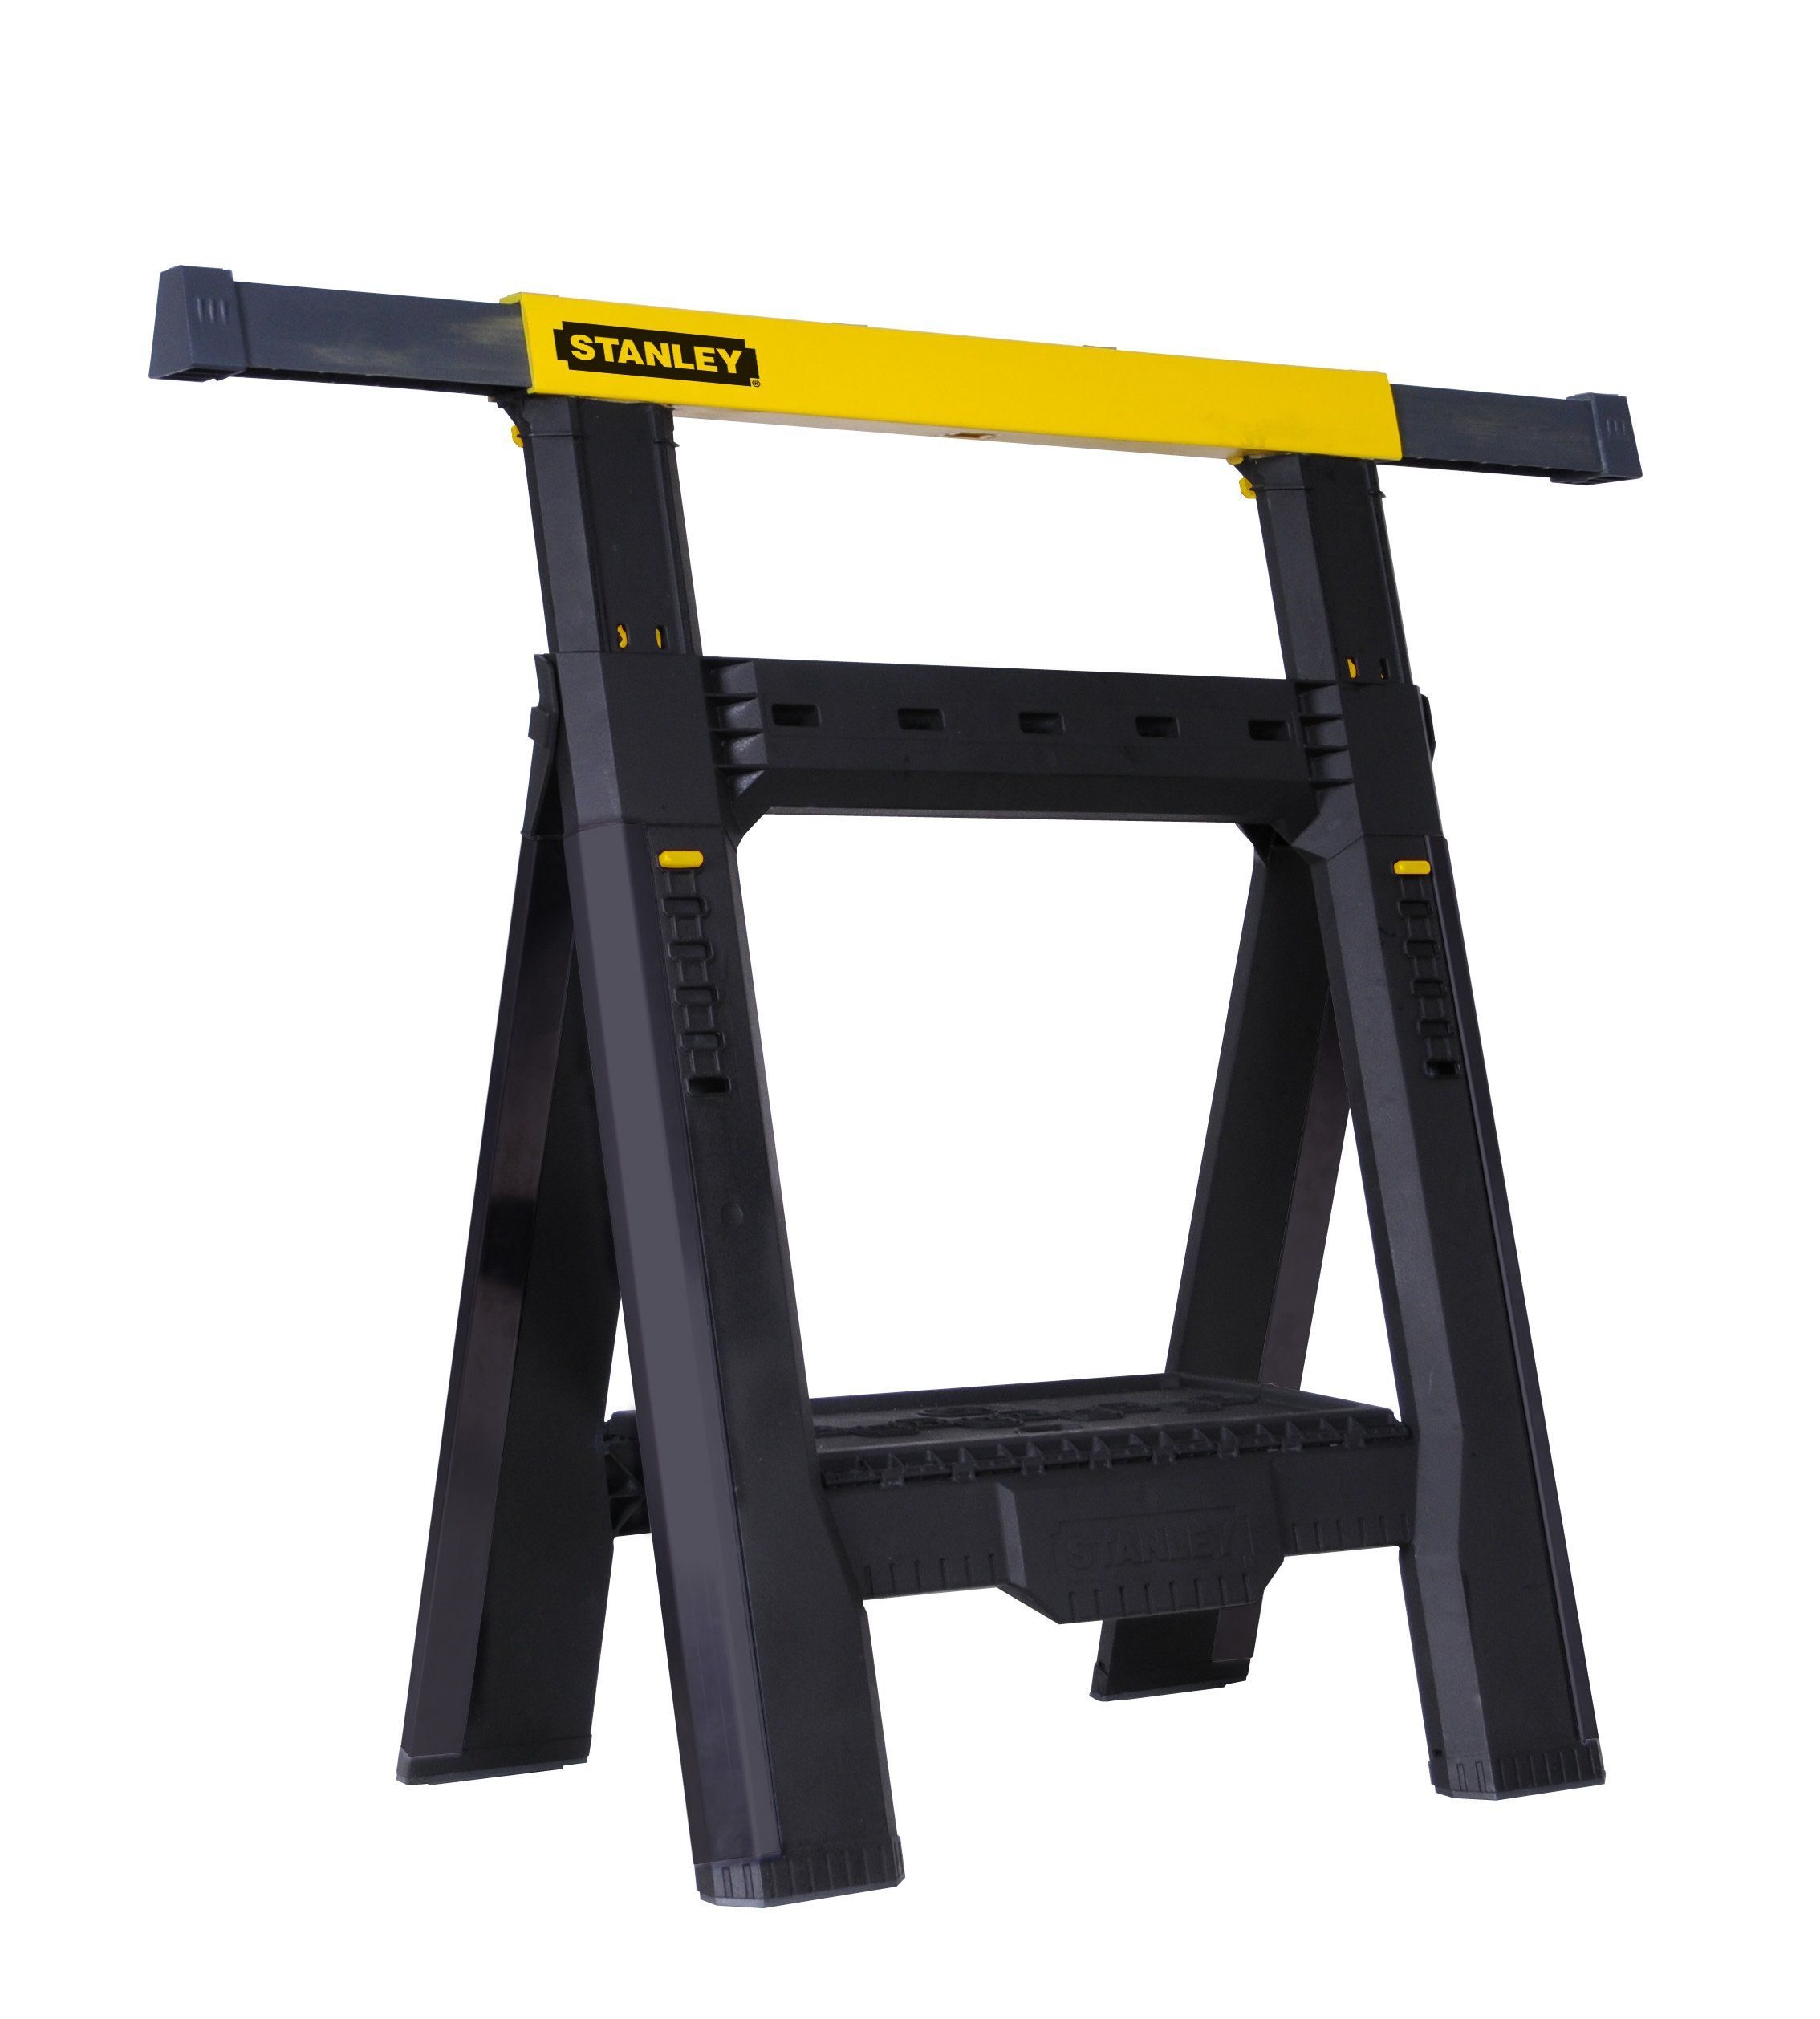 Stanley STST60626 Adjustable Sawhorse Twin Pack by Stanley (Image #3)